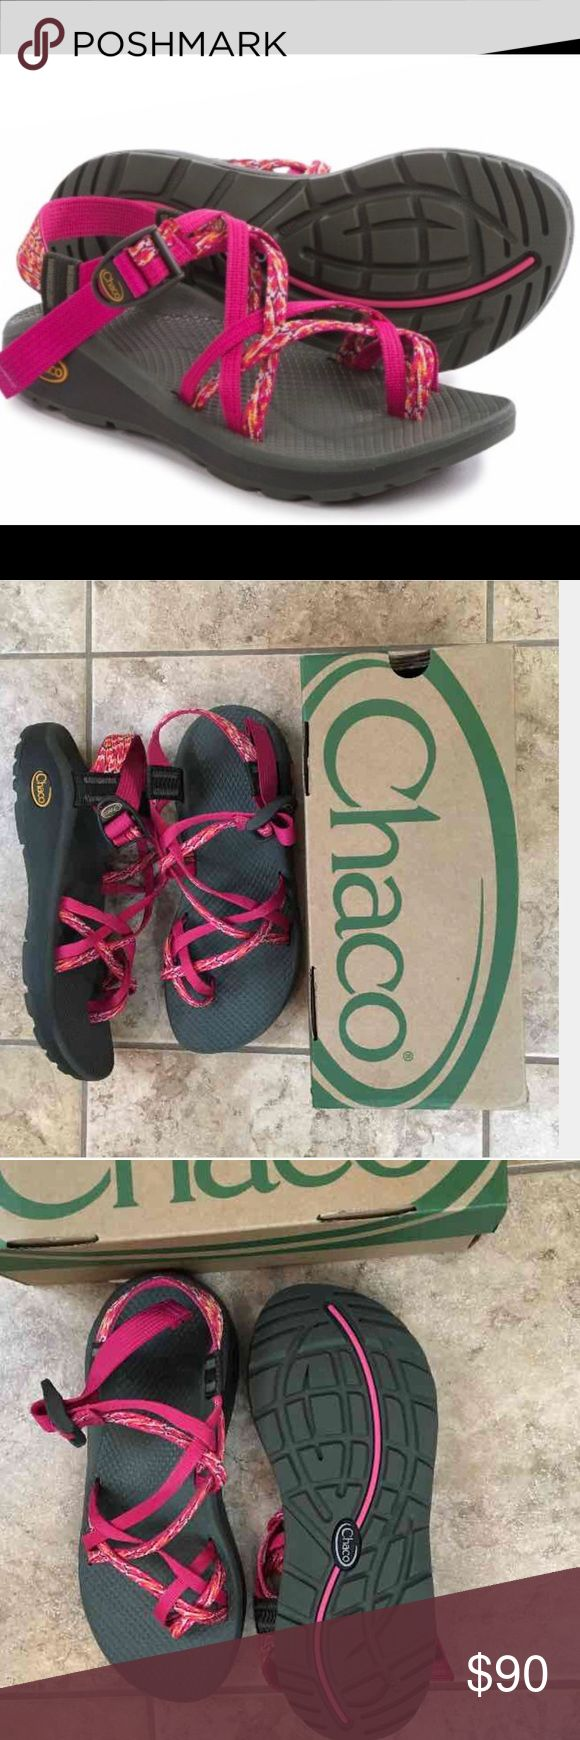 Chacos Z cloud x2 Sandals New never used SZ 9 Gorgeous color very cute new with box.   Price firm Chacos Shoes Sandals